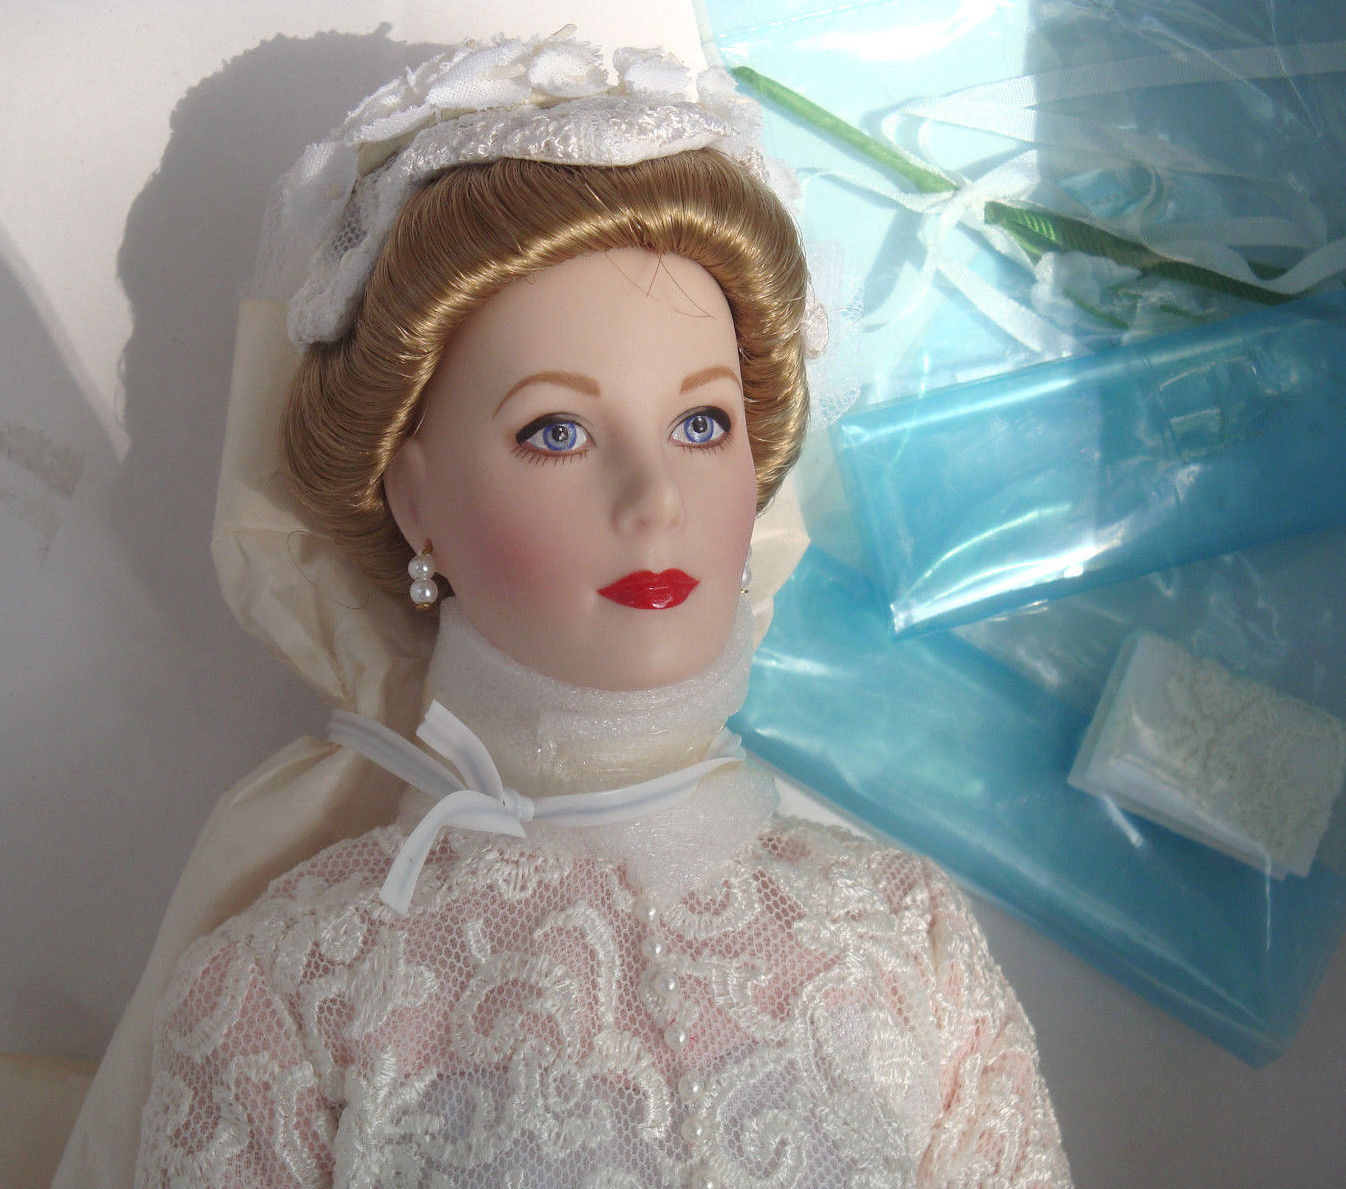 Dolly Bridal Collection: Franklin Dolls And Catalogues: Franklin Mint Doll Bridal